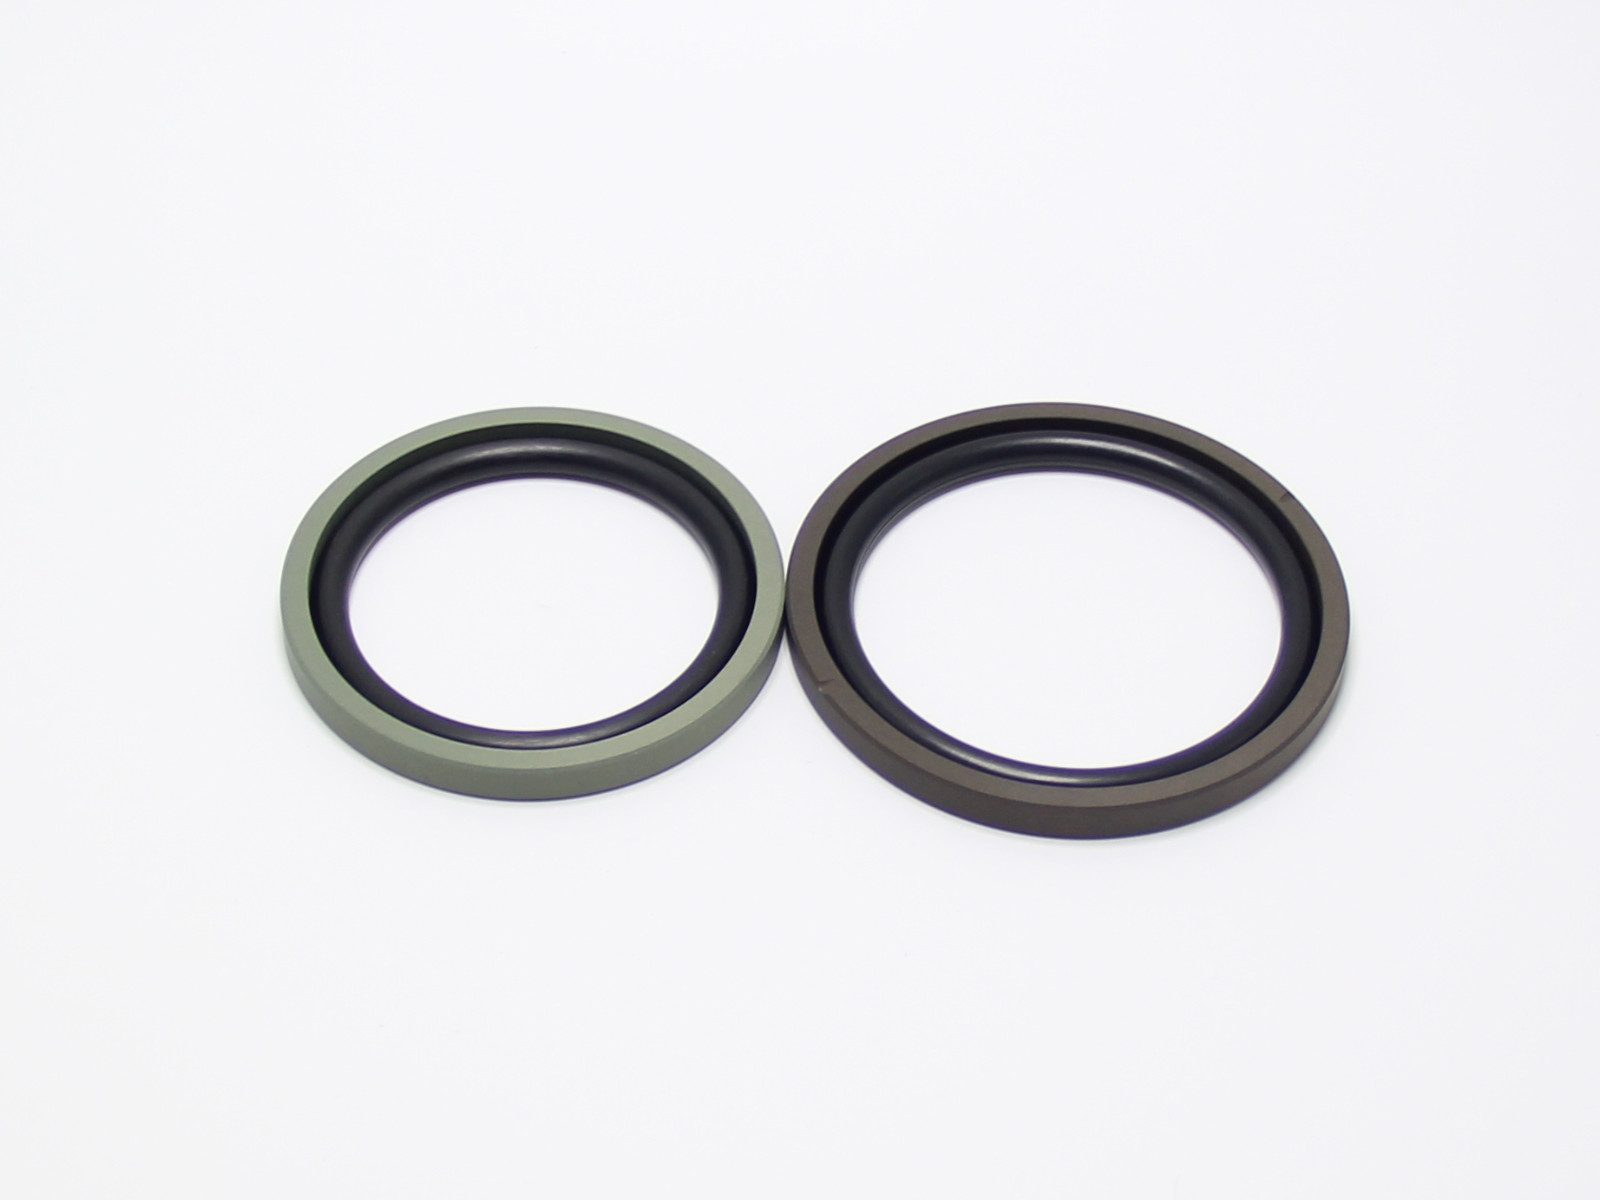 DSH-Pneumatic Piston Seal Manufacture | Spgo - Ptfe Filled With-5